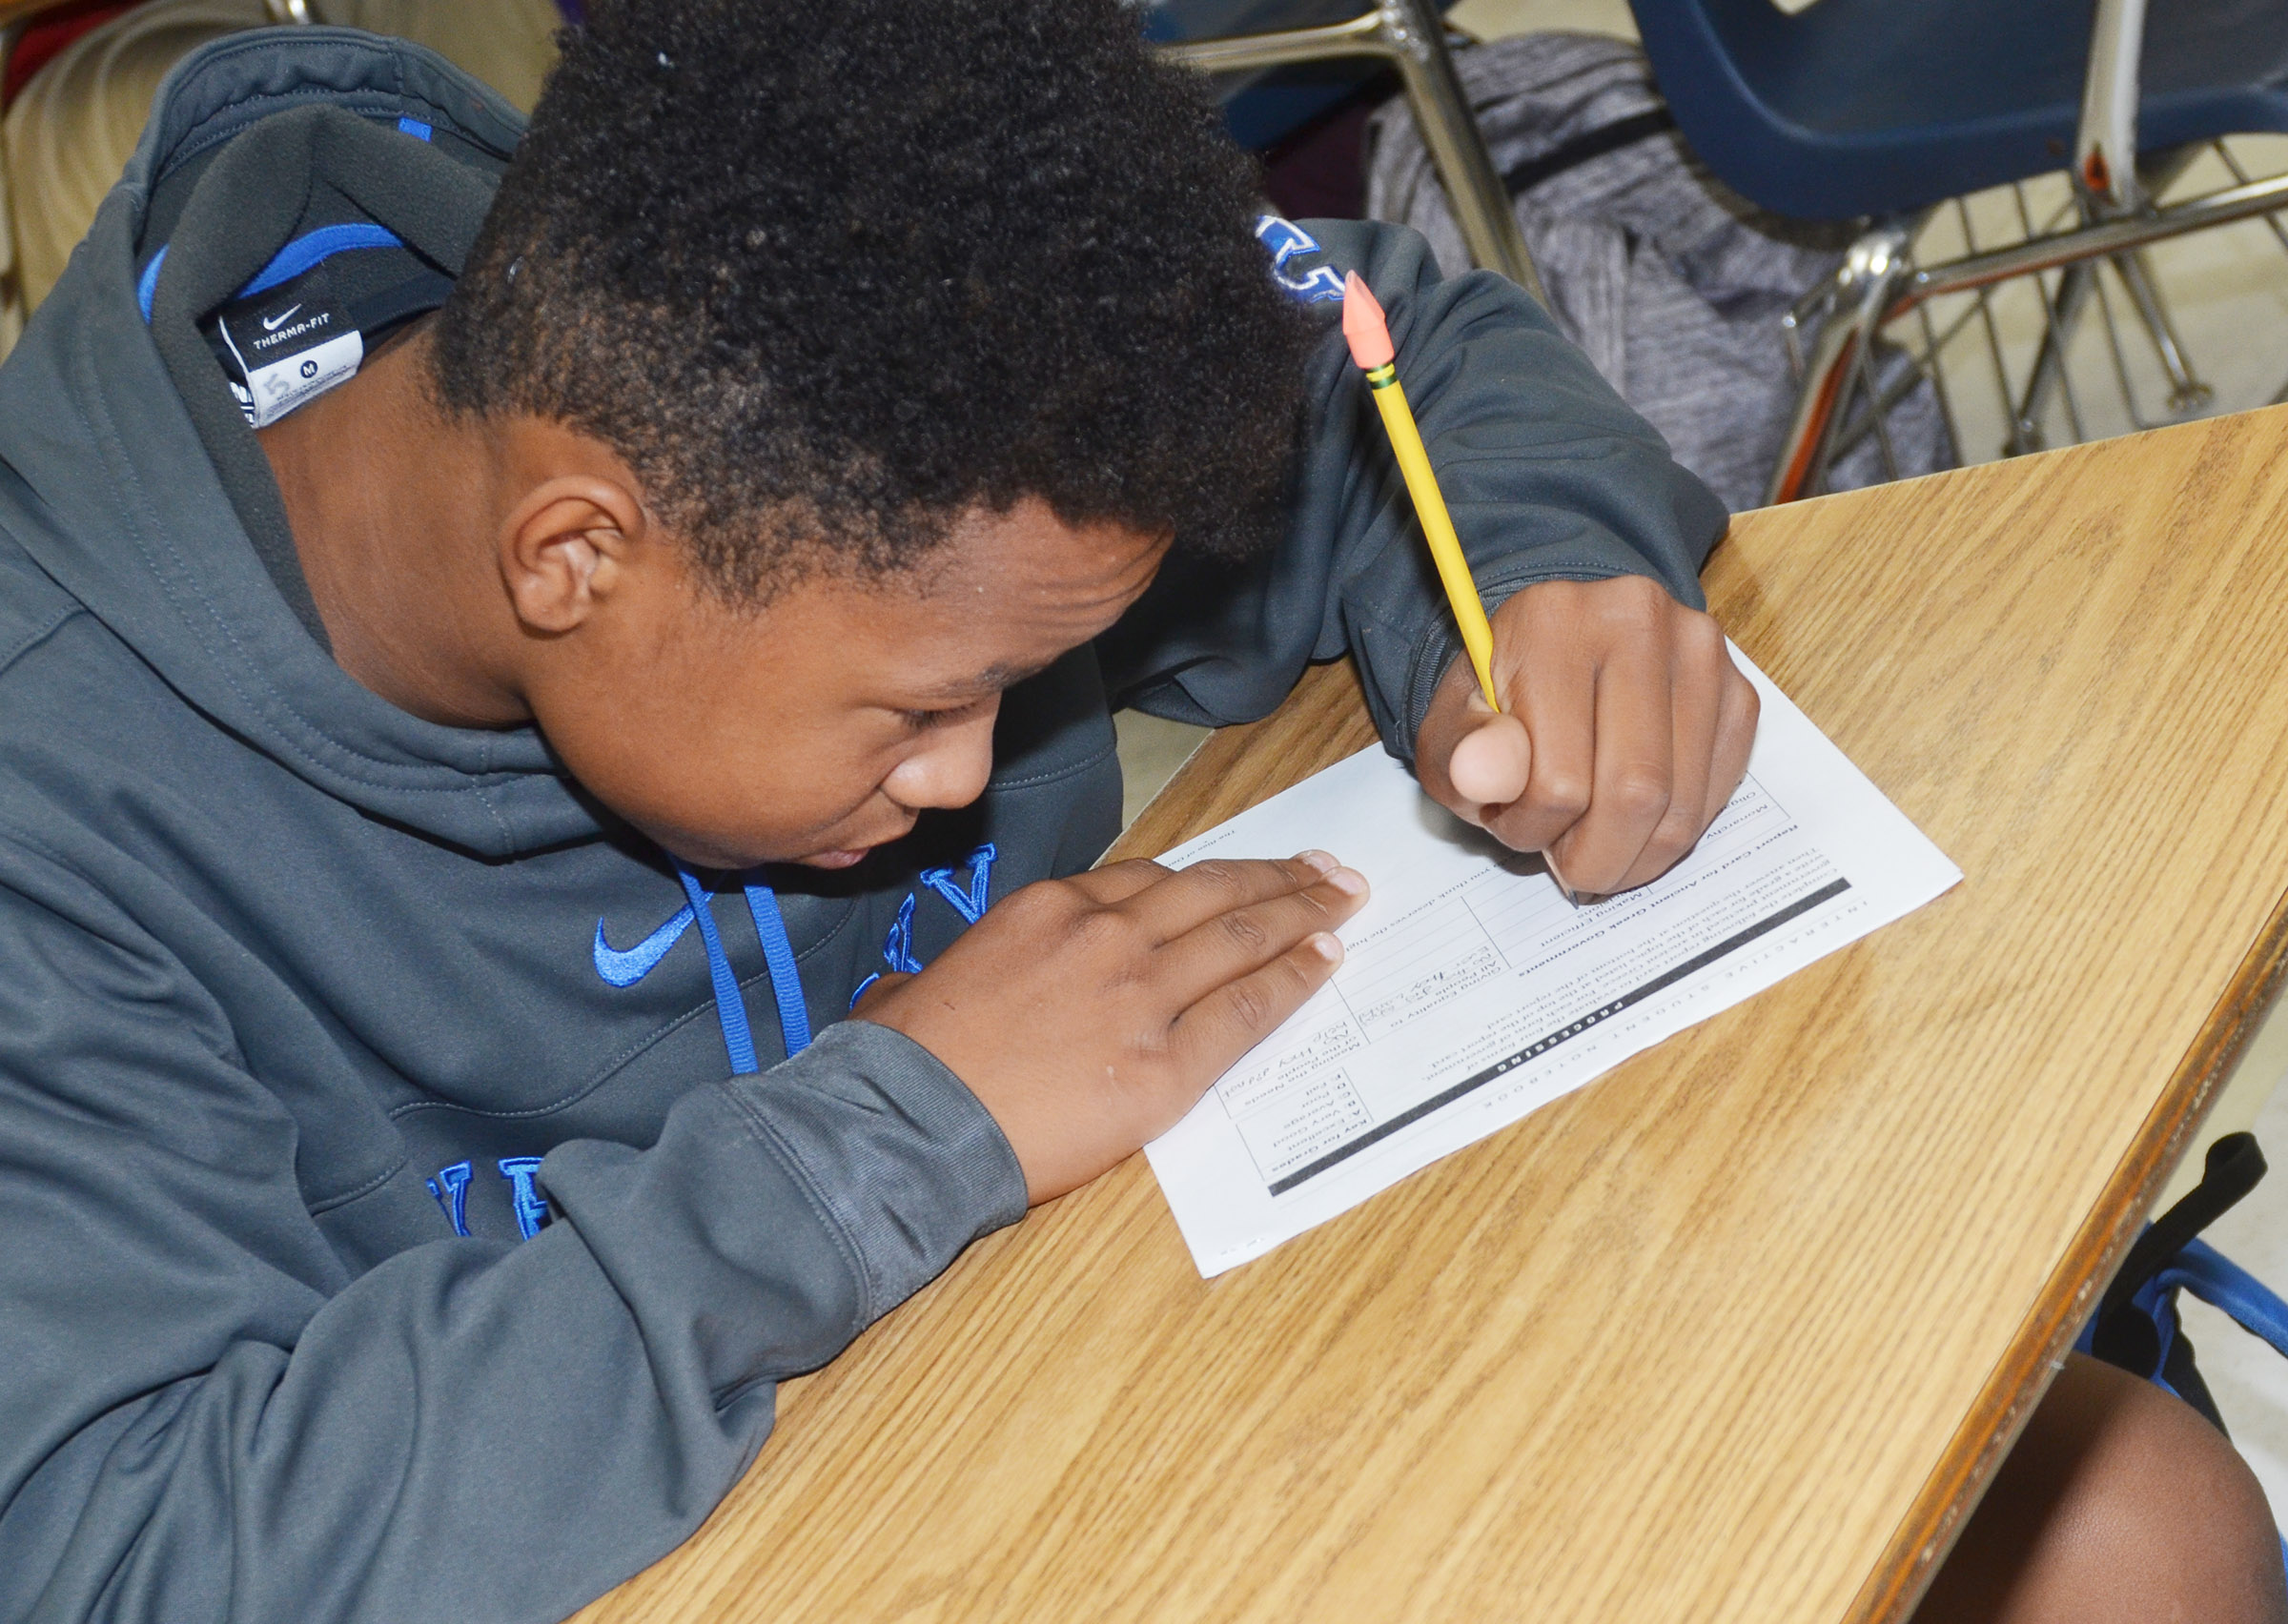 CMS seventh-grader Deondre Weathers works on an exam during the after-school study session on Friday, Oct. 27.